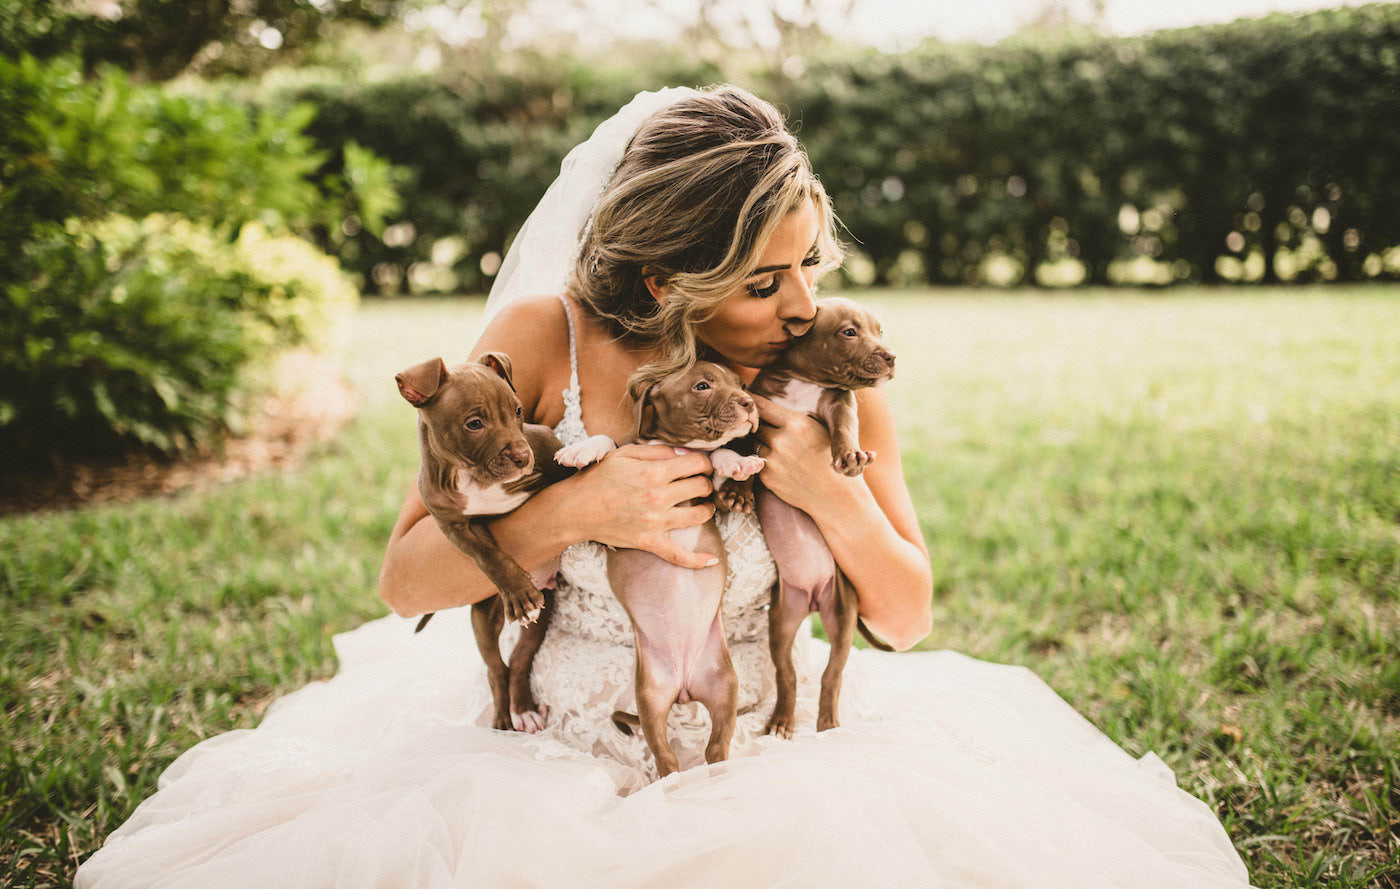 Tampa Wedding with Adoptable Puppies | Bride Kissing a Puppy Dog | Puppy Instead of Bridesmaid Bouquet